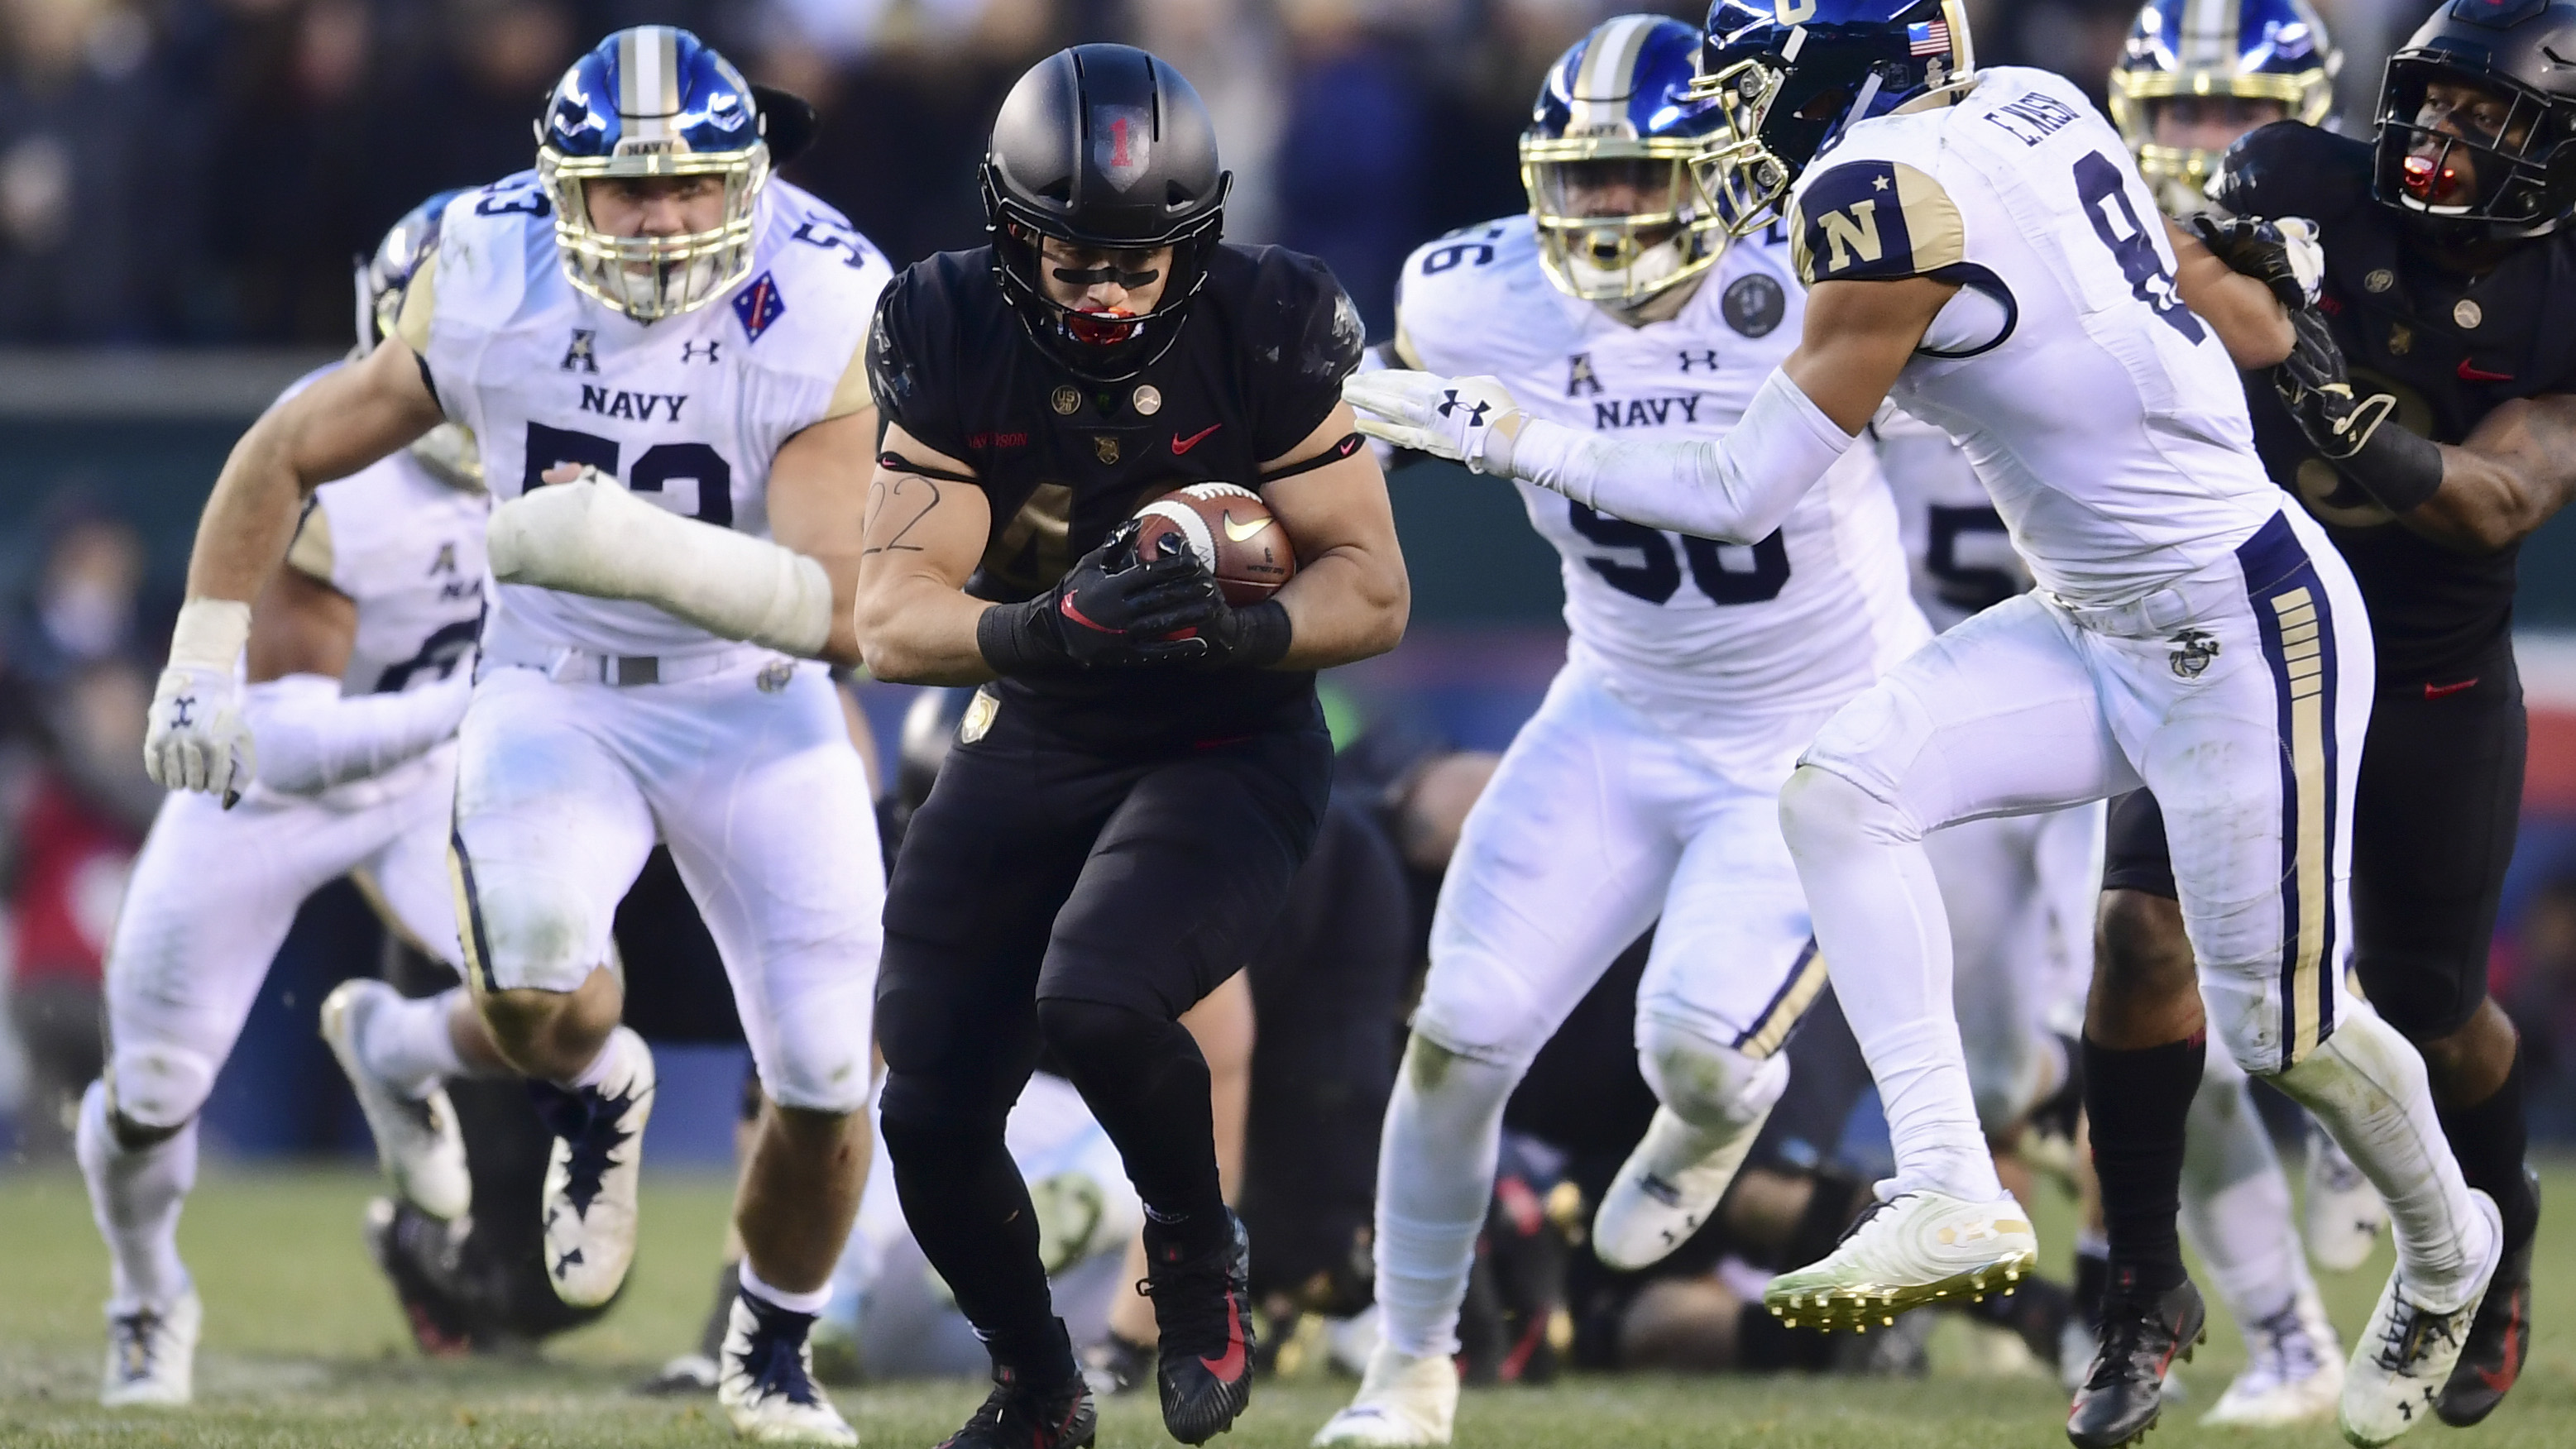 PHILADELPHIA, PENNSYLVANIA - DECEMBER 08: Calen Holt #22 of the Army Black Knights carries the ball during the second quarter of the game against the Navy Midshipmen at Lincoln Financial Field on December 08, 2018 in Philadelphia, Pennsylvania. (Photo by Sarah Stier/Getty Images)